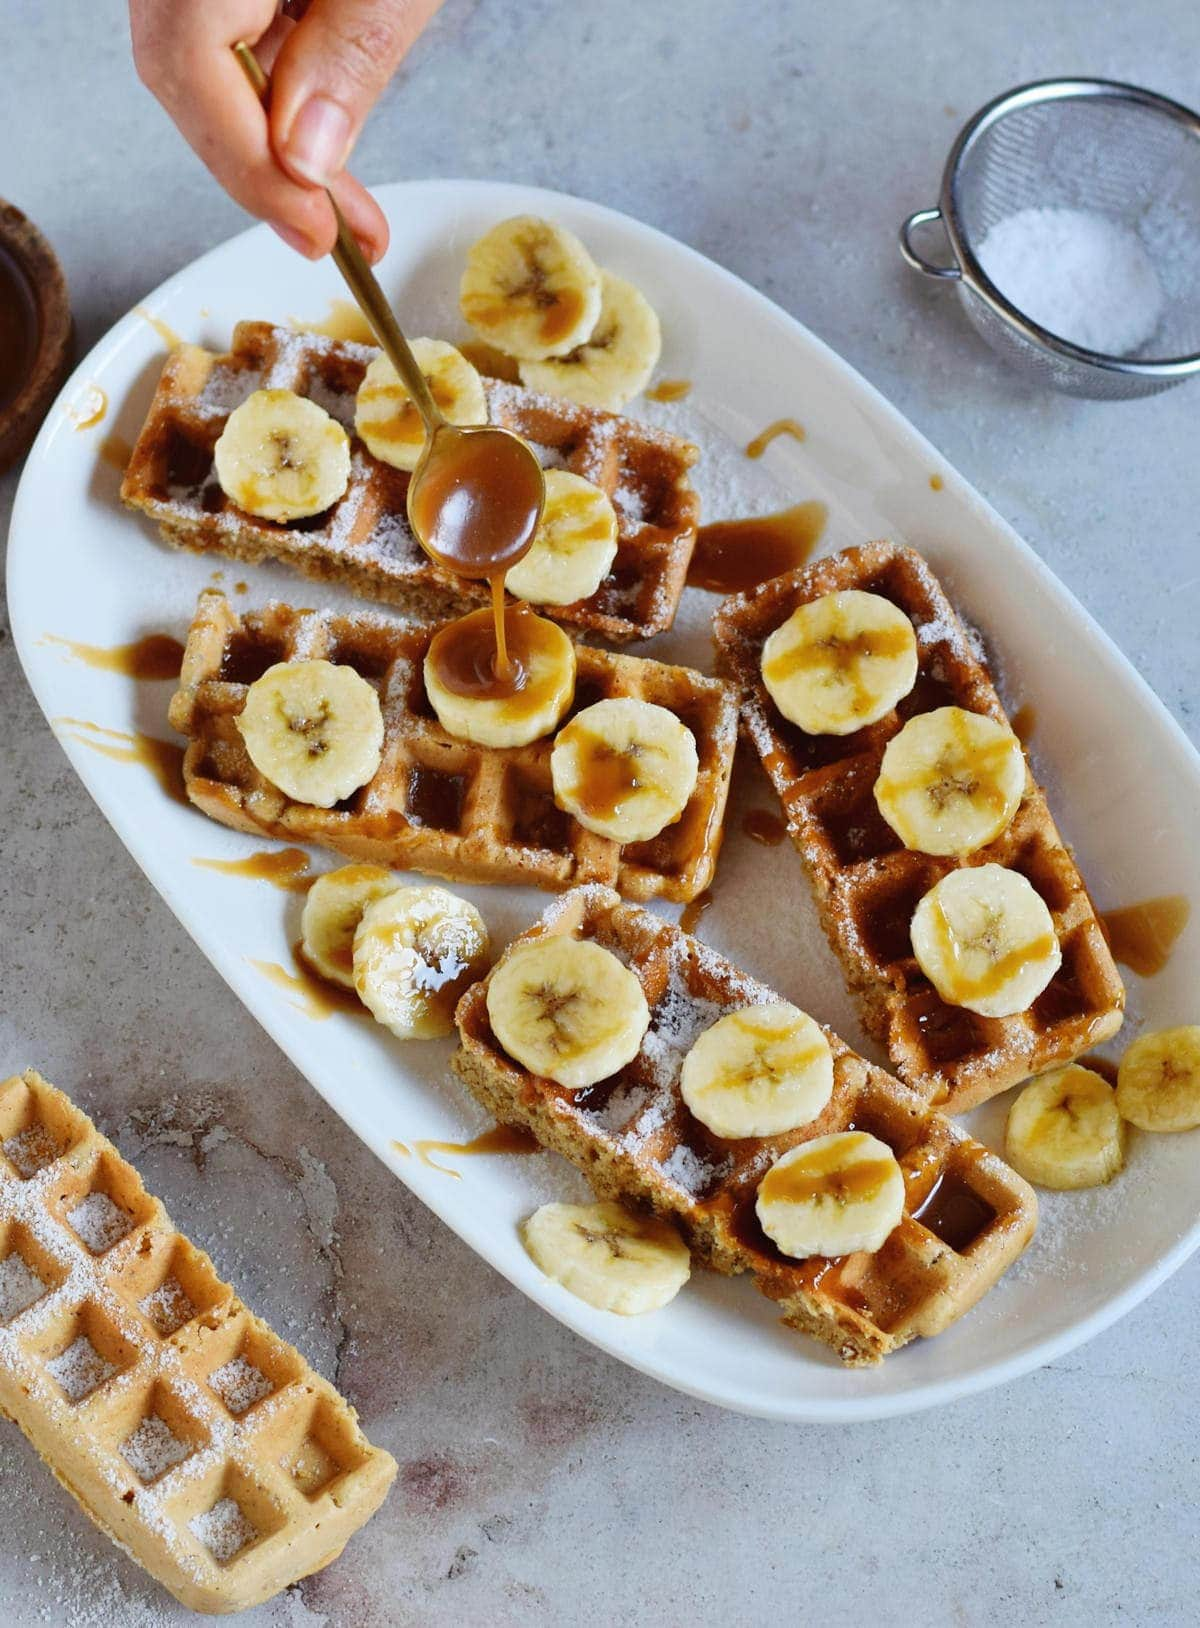 waffles on a plate with bananas and caramel sauce